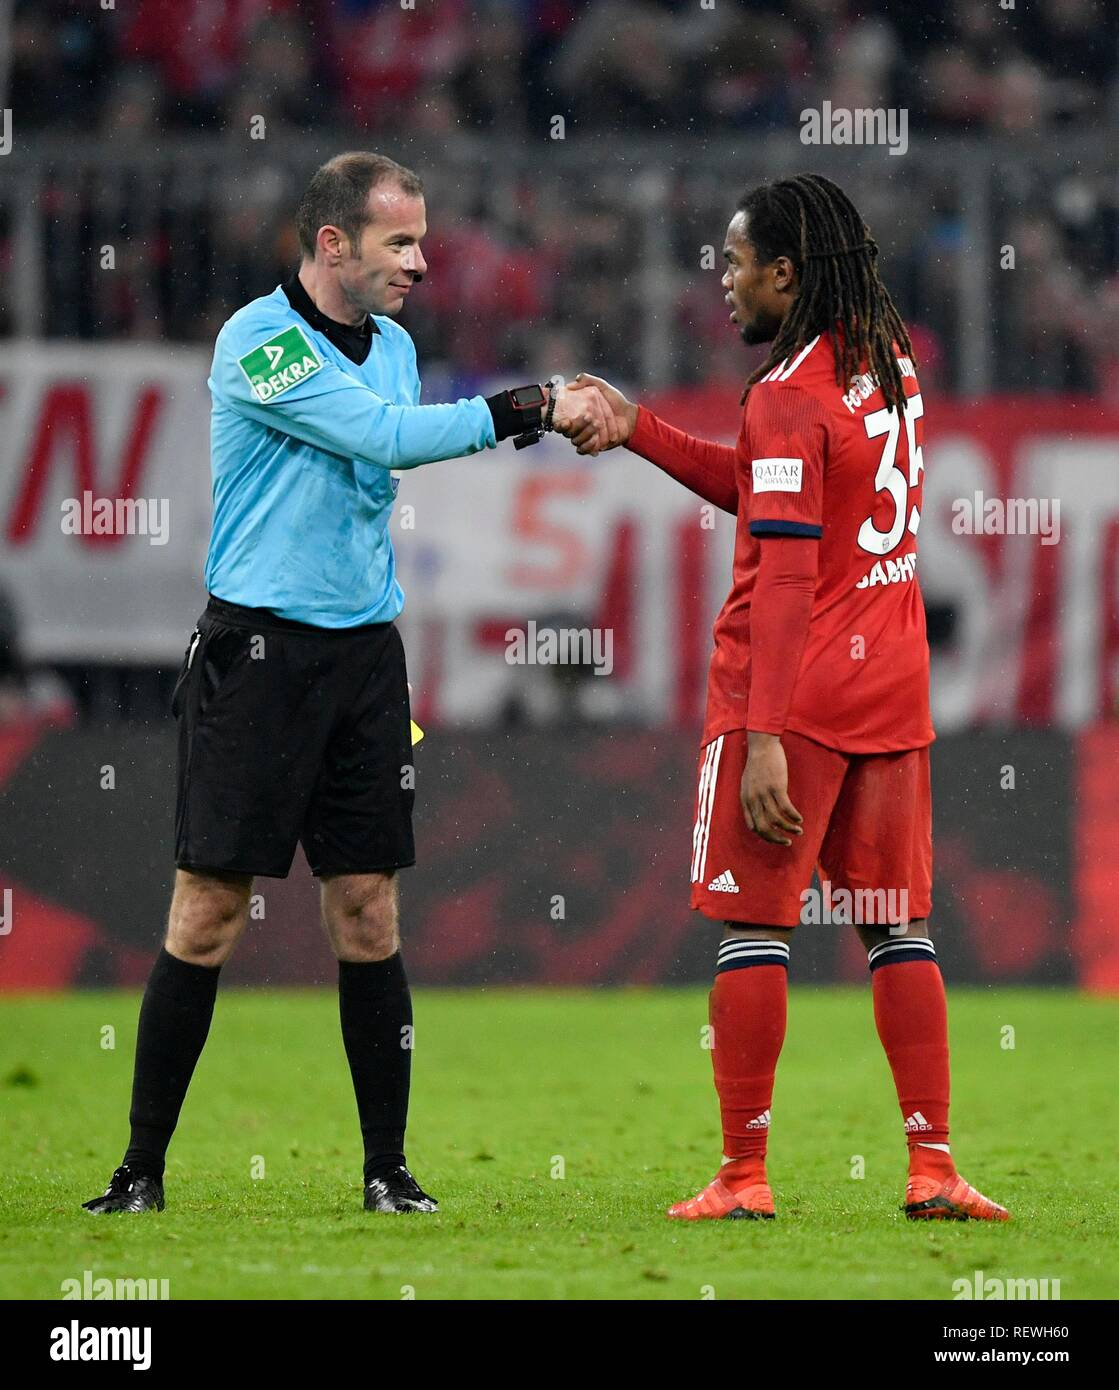 Fairplay Renato Sanches FC Bayern Munich and referee Marco Fritz shake hands for yellow-red card, Allianz Arena, Munich, Bavaria - Stock Image